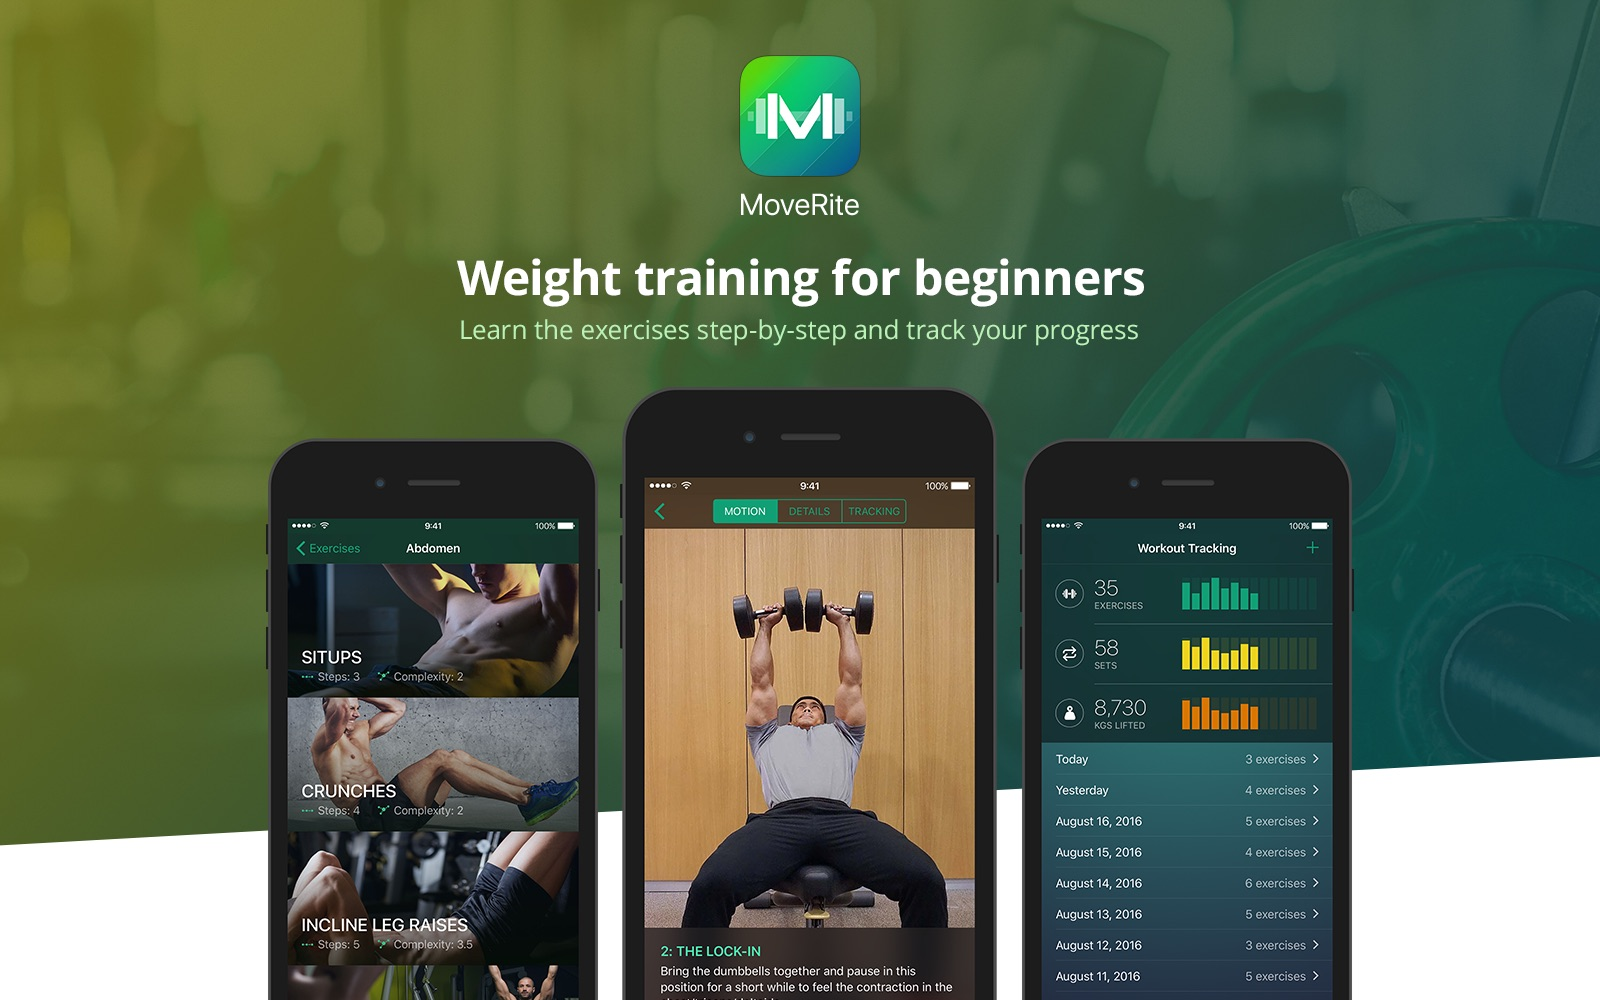 Weight training for beginners by MoveRite